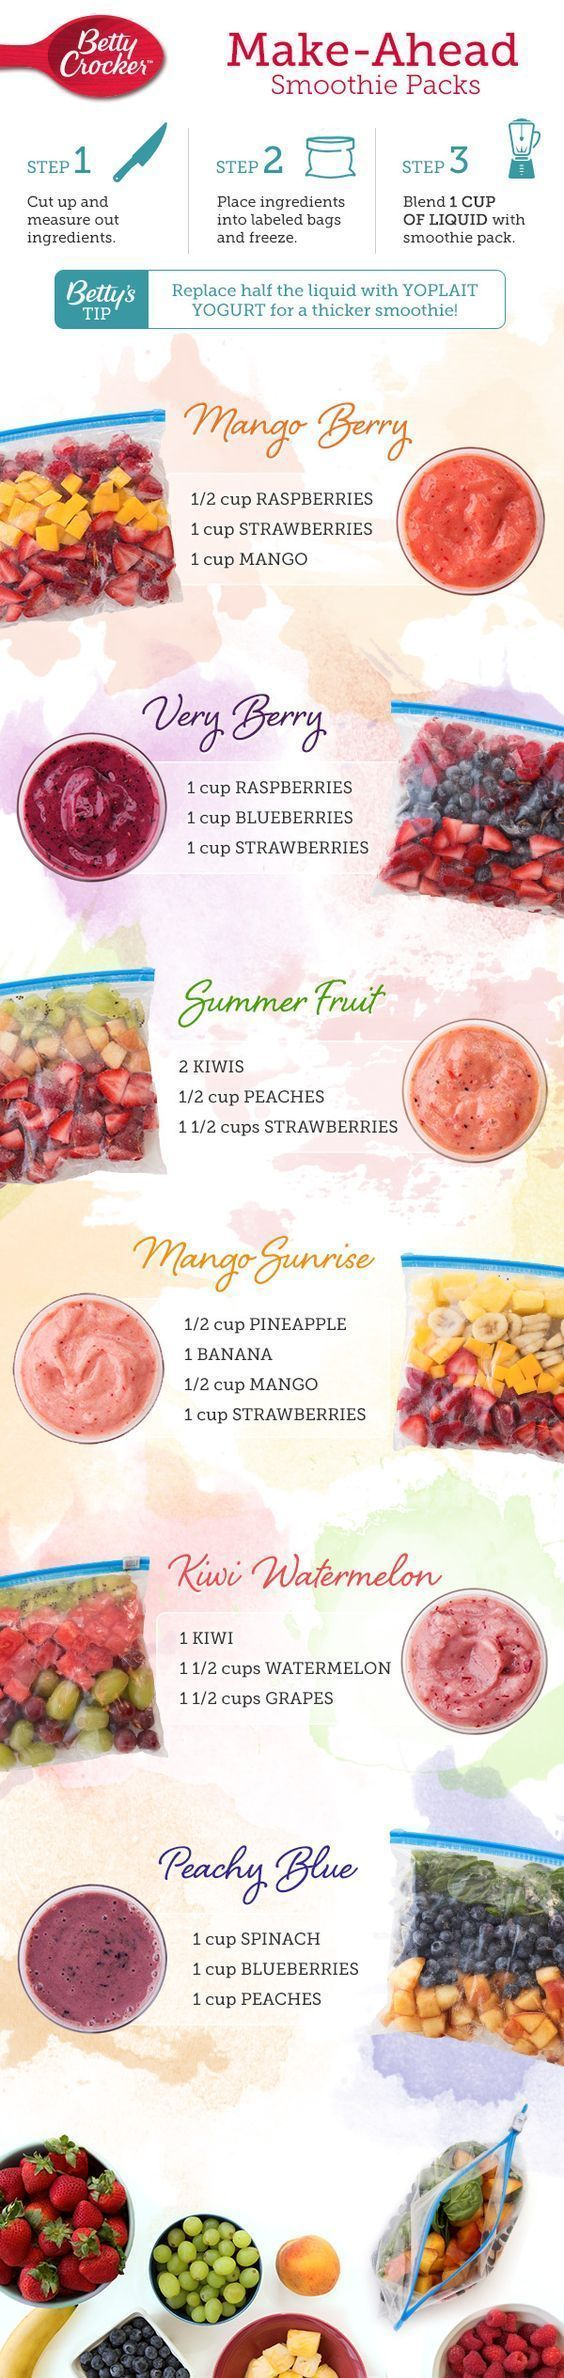 Smart make-ahead smoothies. Put in the freezer then pop in your Oster Pro Blender when you want one!